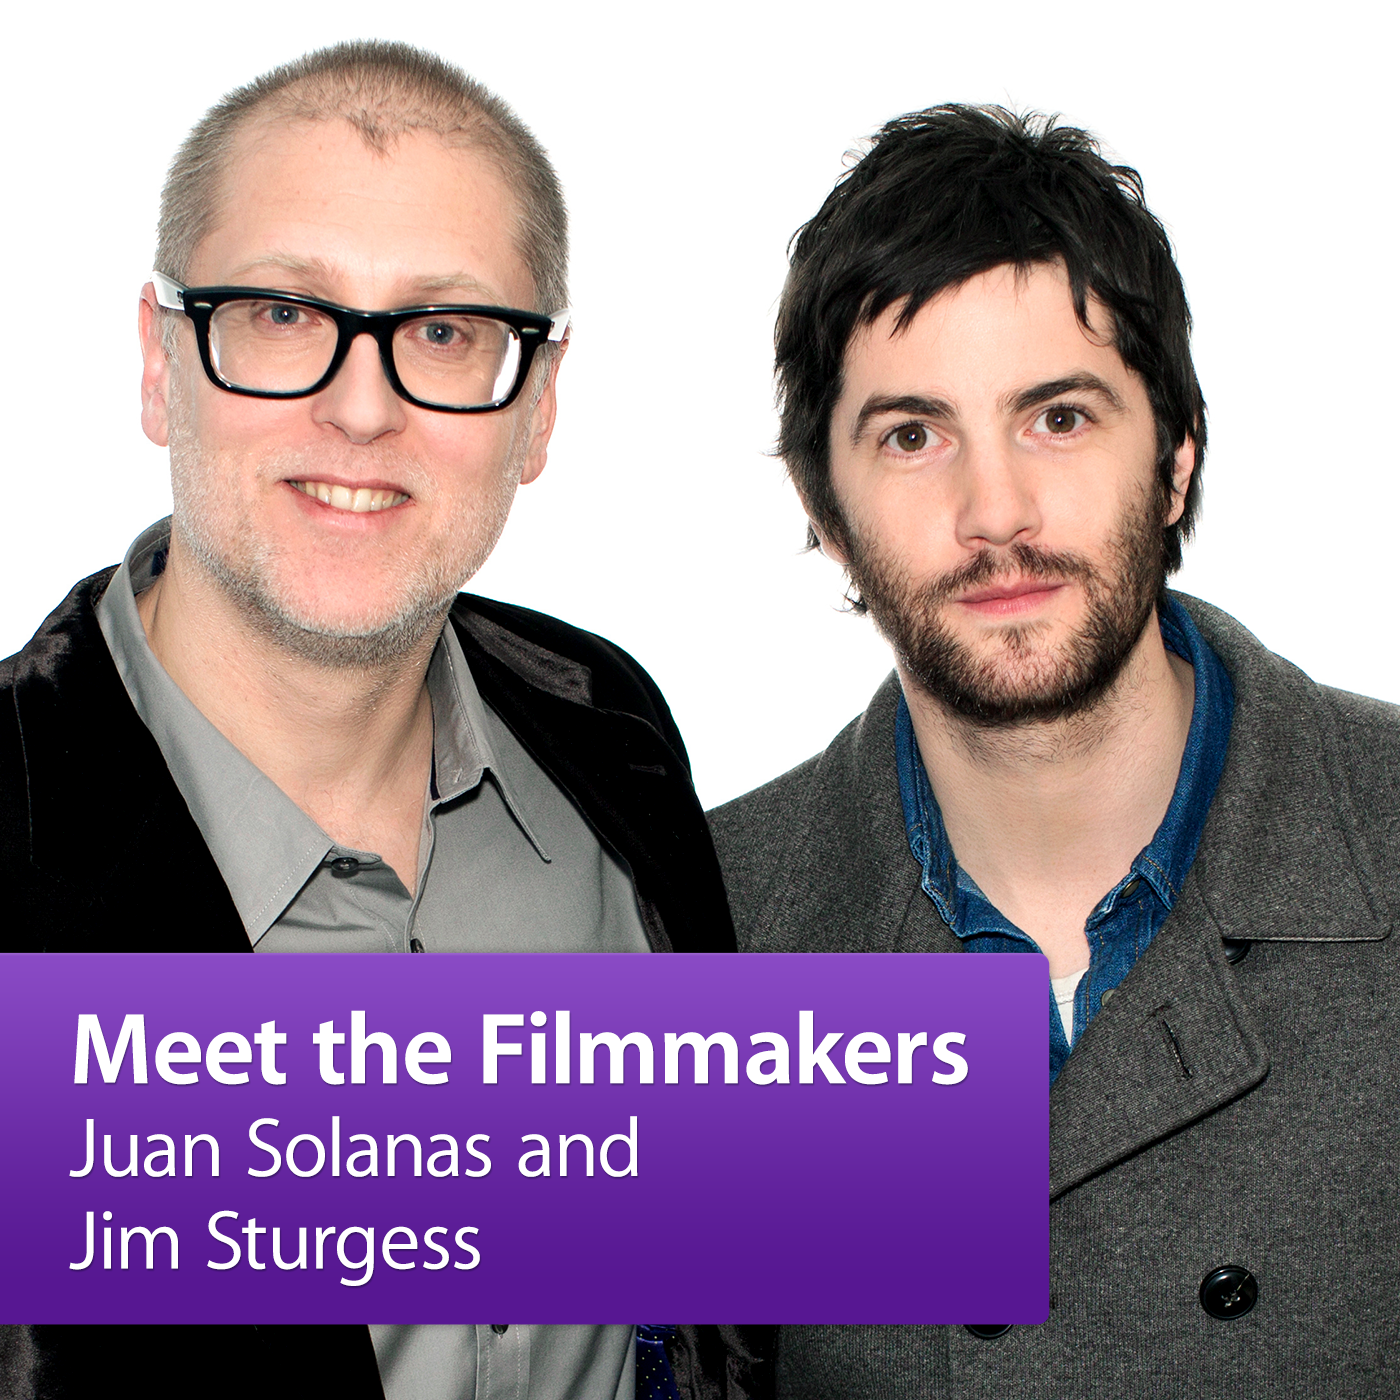 Juan Solanas and Jim Sturgess: Meet the Filmmakers